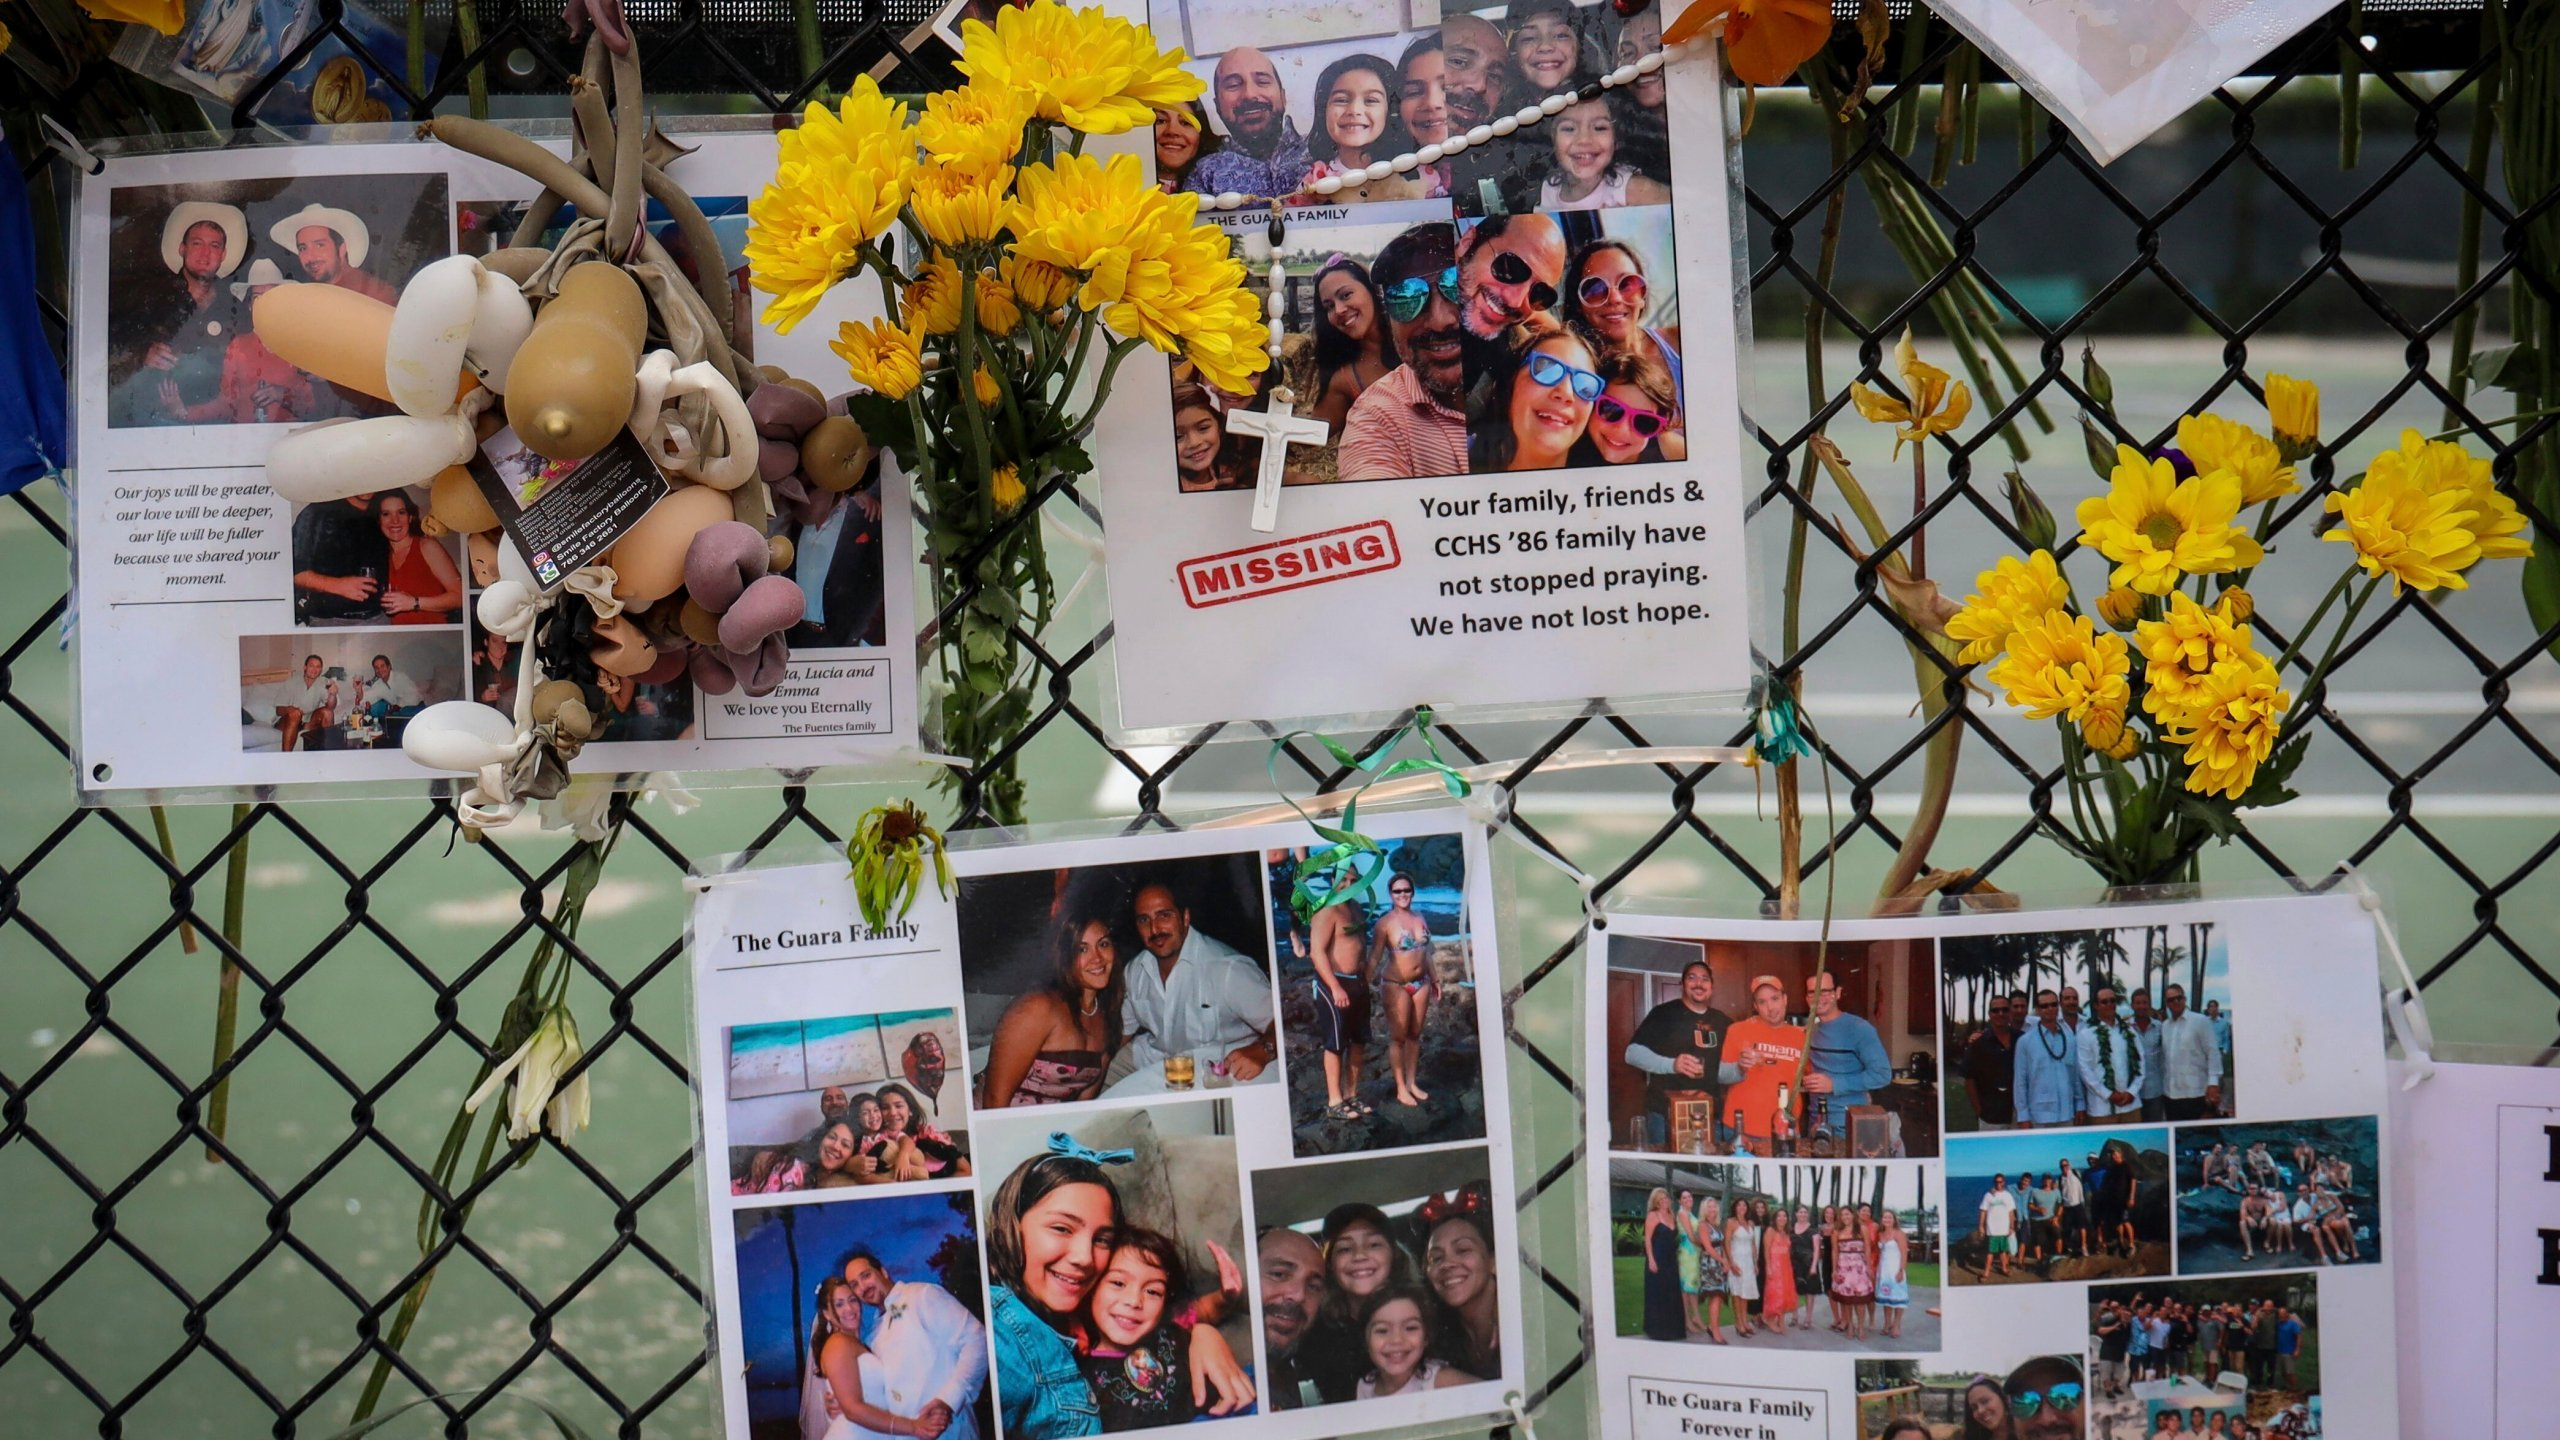 In this July 6, 2021, file photo, a memorial for the Guara family is posted on a fence near the Champlain Towers South, in Surfside, Fla. Recovery crews at the Florida condominium collapse are cataloging all personal possessions found in the rubble in hopes of returning them to families of the dead or survivors. (Carl Juste/Miami Herald via AP, File)